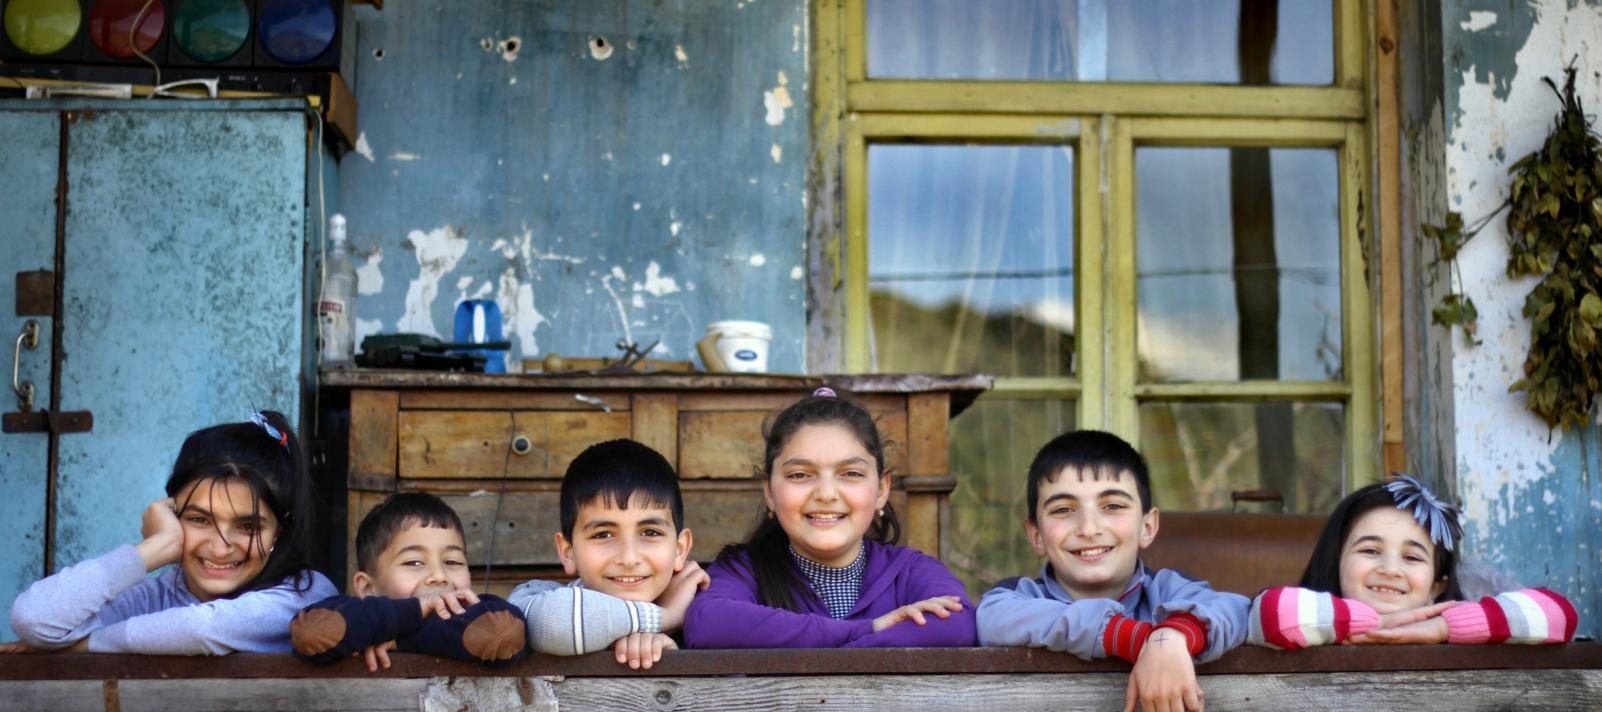 Six children standing behind the fences in front of the old building in the village and putting their arms on the fence and smiling.